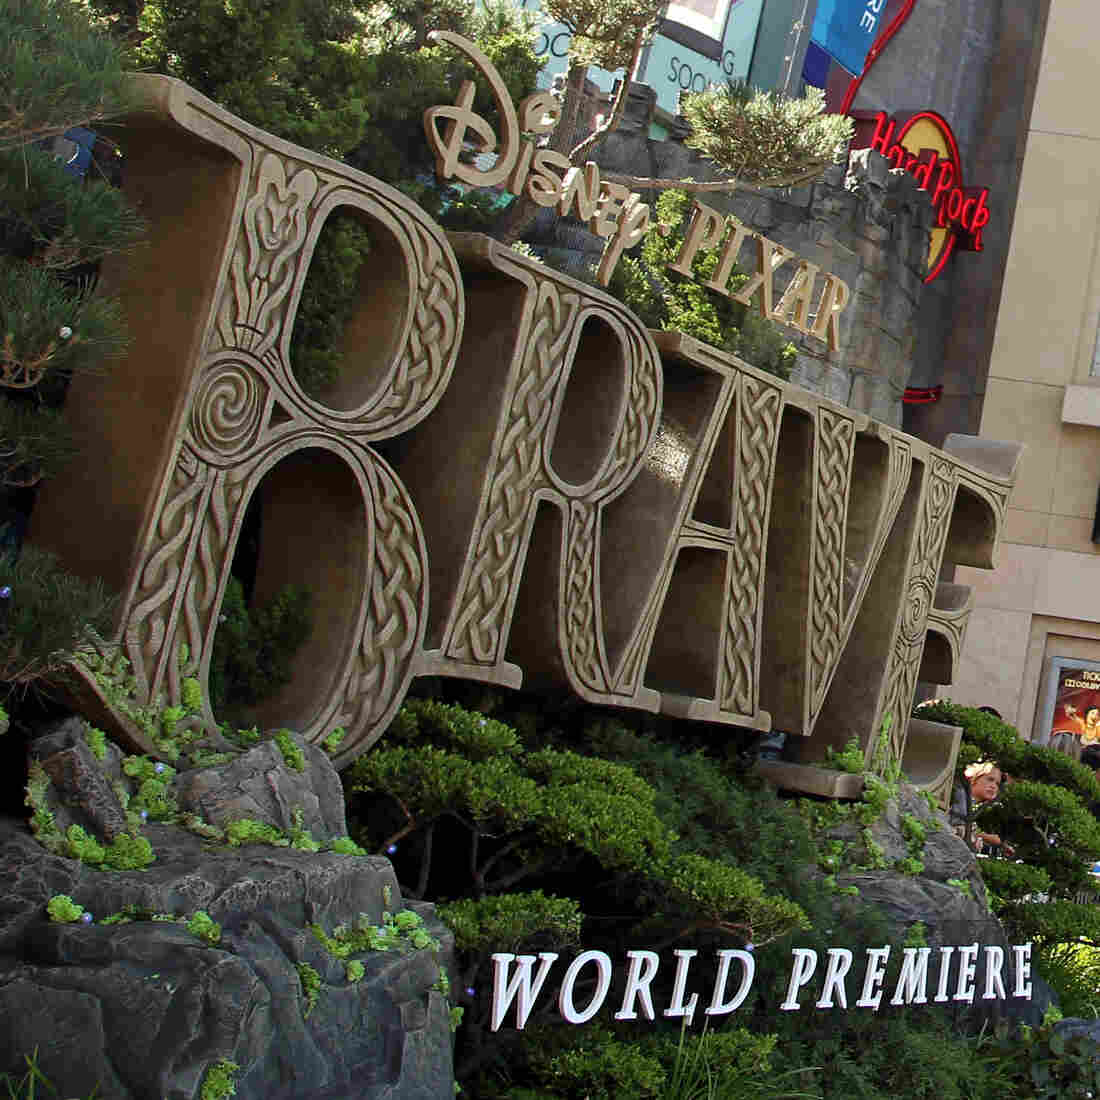 Branding 'Brave': The Cultural Capital Of Princesses